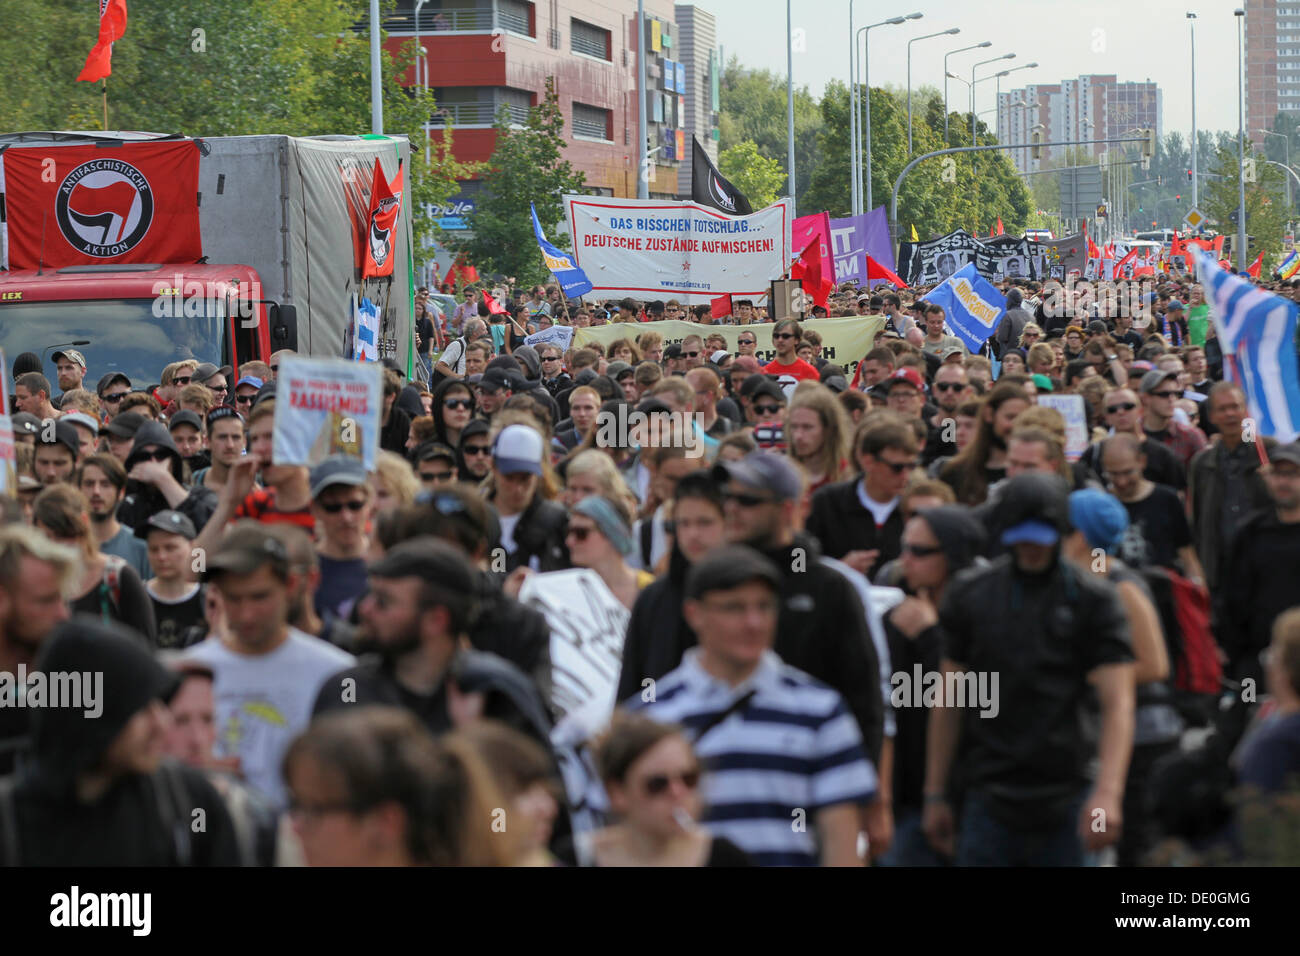 Thousands of people protesting against racism, 20 years after the massive right-wing riots in Rostock-Lichtenhagen - Stock Image